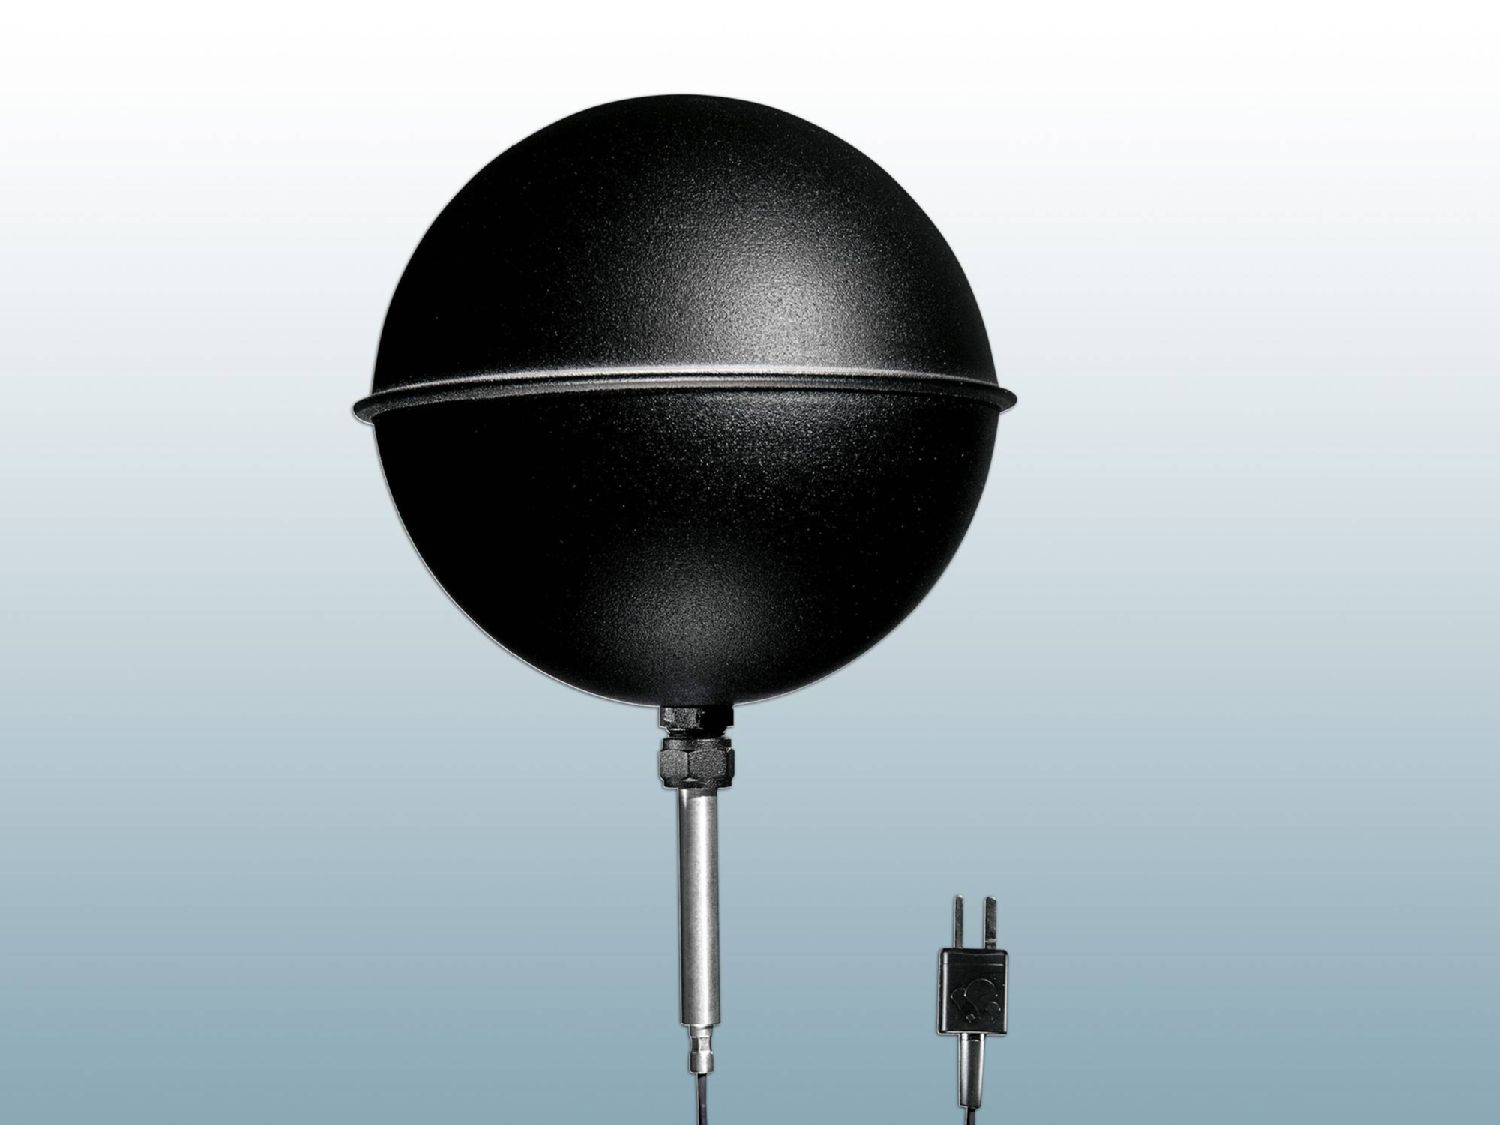 Temperature monitoring  with globe thermometer